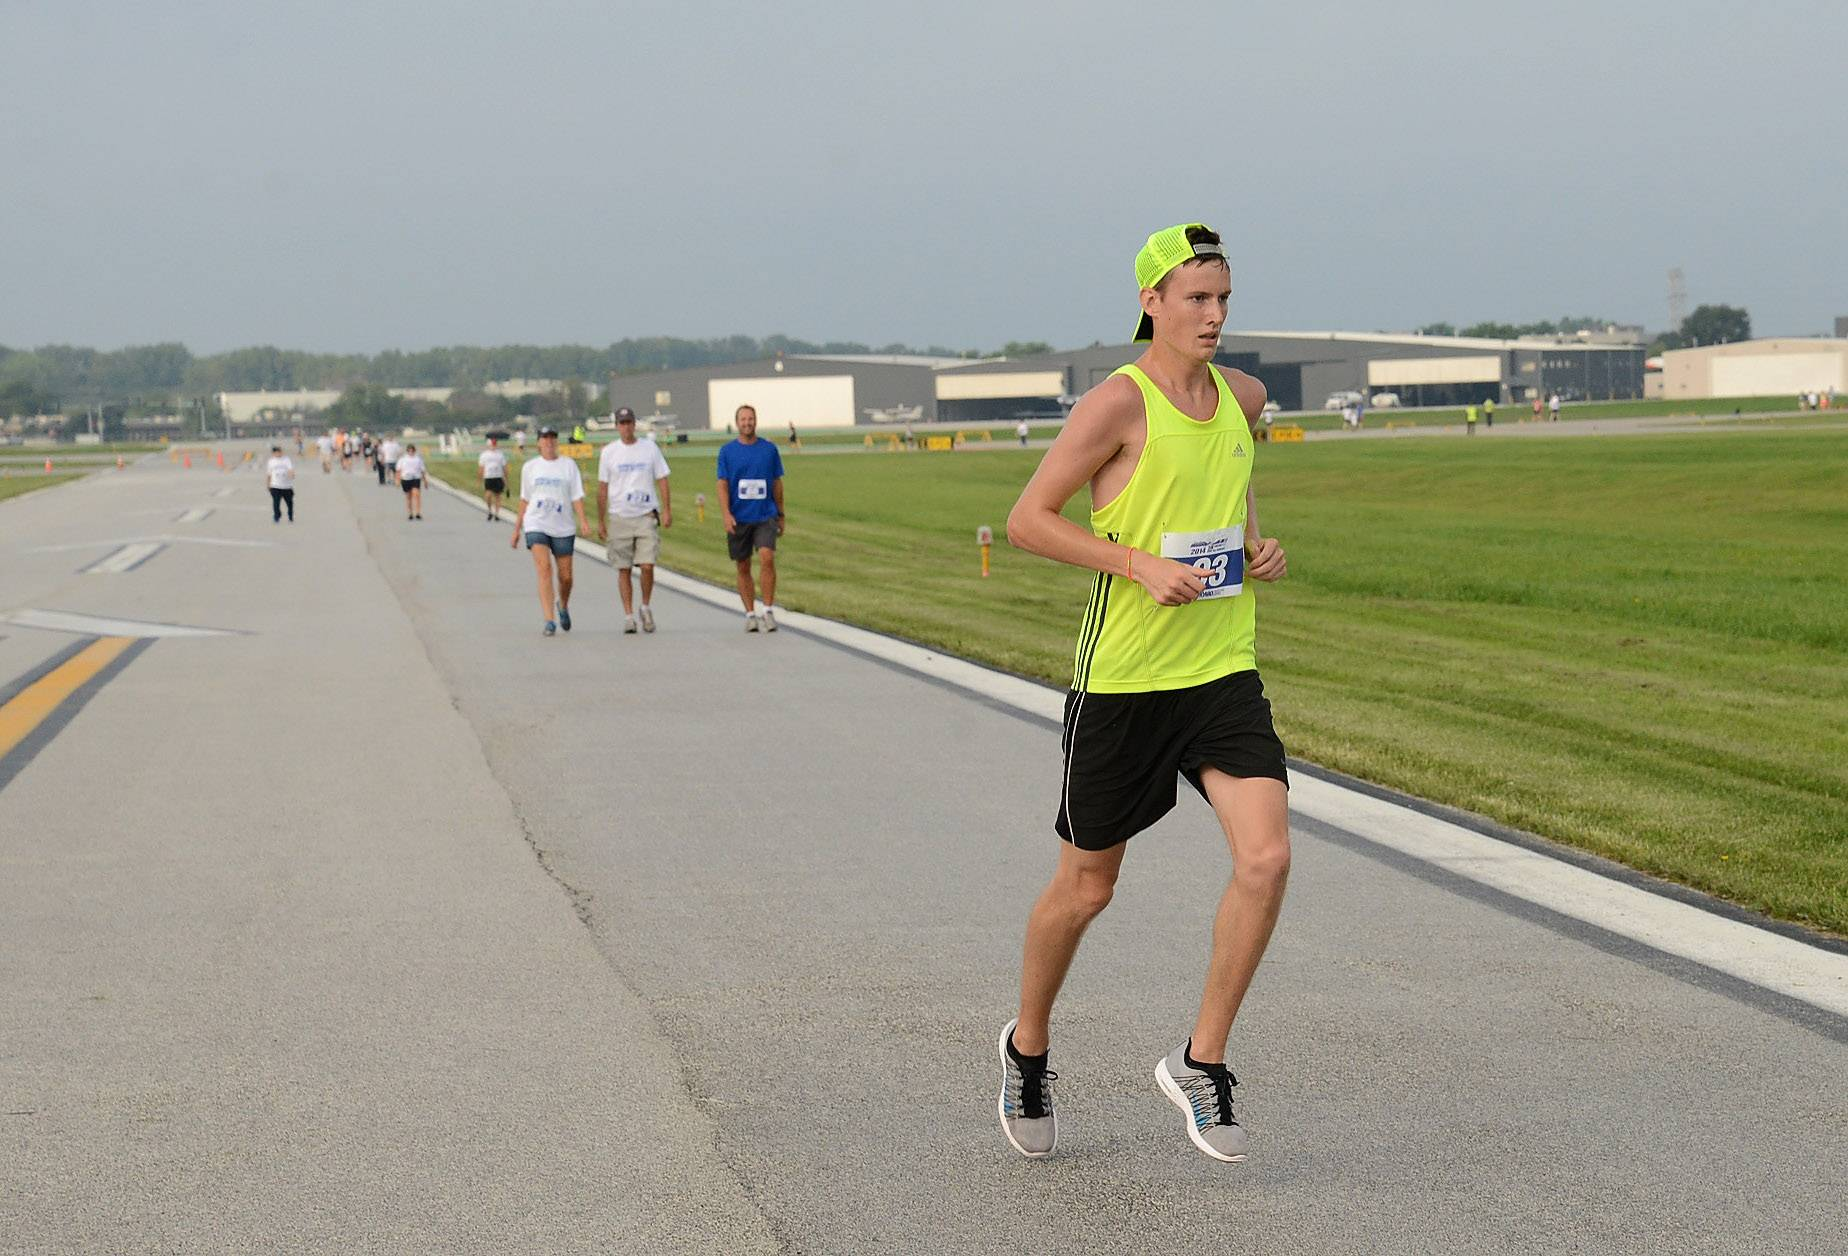 Ryan Kearns of Prospect Heights heads for the finish with a winning time of 17:28 during the Run the Runway 5K Run and 1 Mile Walk at Chicago Executive Airport in Wheeling.